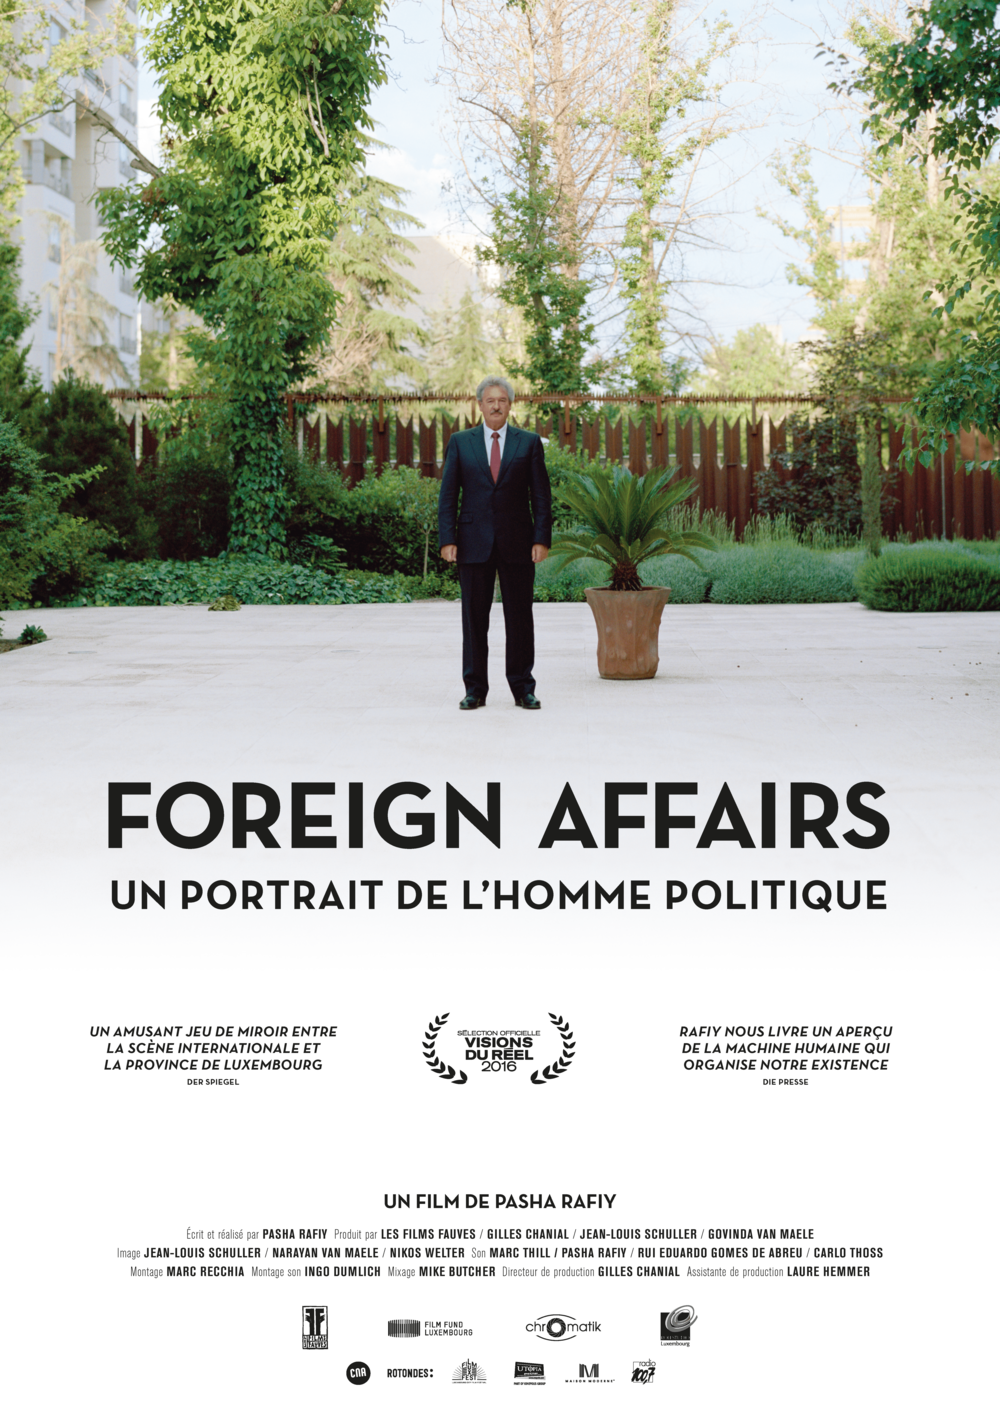 FOREIGN AFFAIRS - Directed by Pasha RAFIYWith Jean ASSELBORNYear: 2016Original Version: Luxembourgish, English, German, FrenchGenre: Investigation, CultureRunning Time: 75minProduction companies: LES FILMS FAUVES (LU)